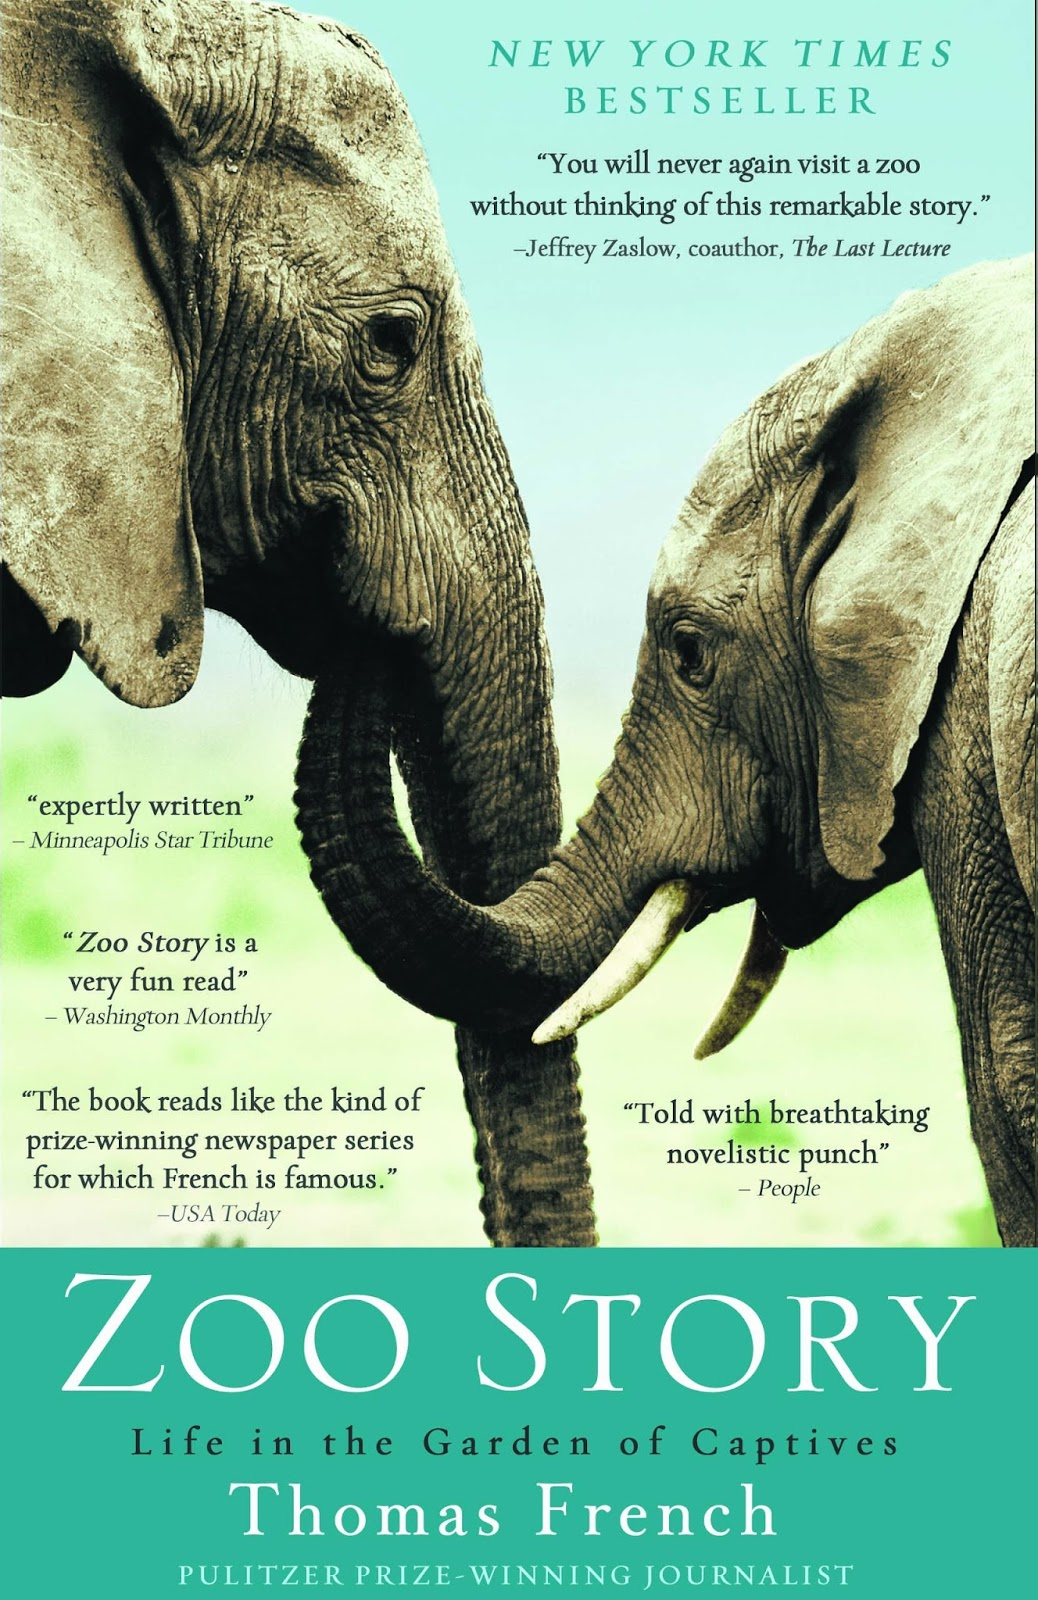 write argument essay on zoos are beneficial to animals Zoos are run by people who love animals,  james_borrell 08-18-2017  five of the strongest arguments against zoos - dr james borrell 02-01-18.